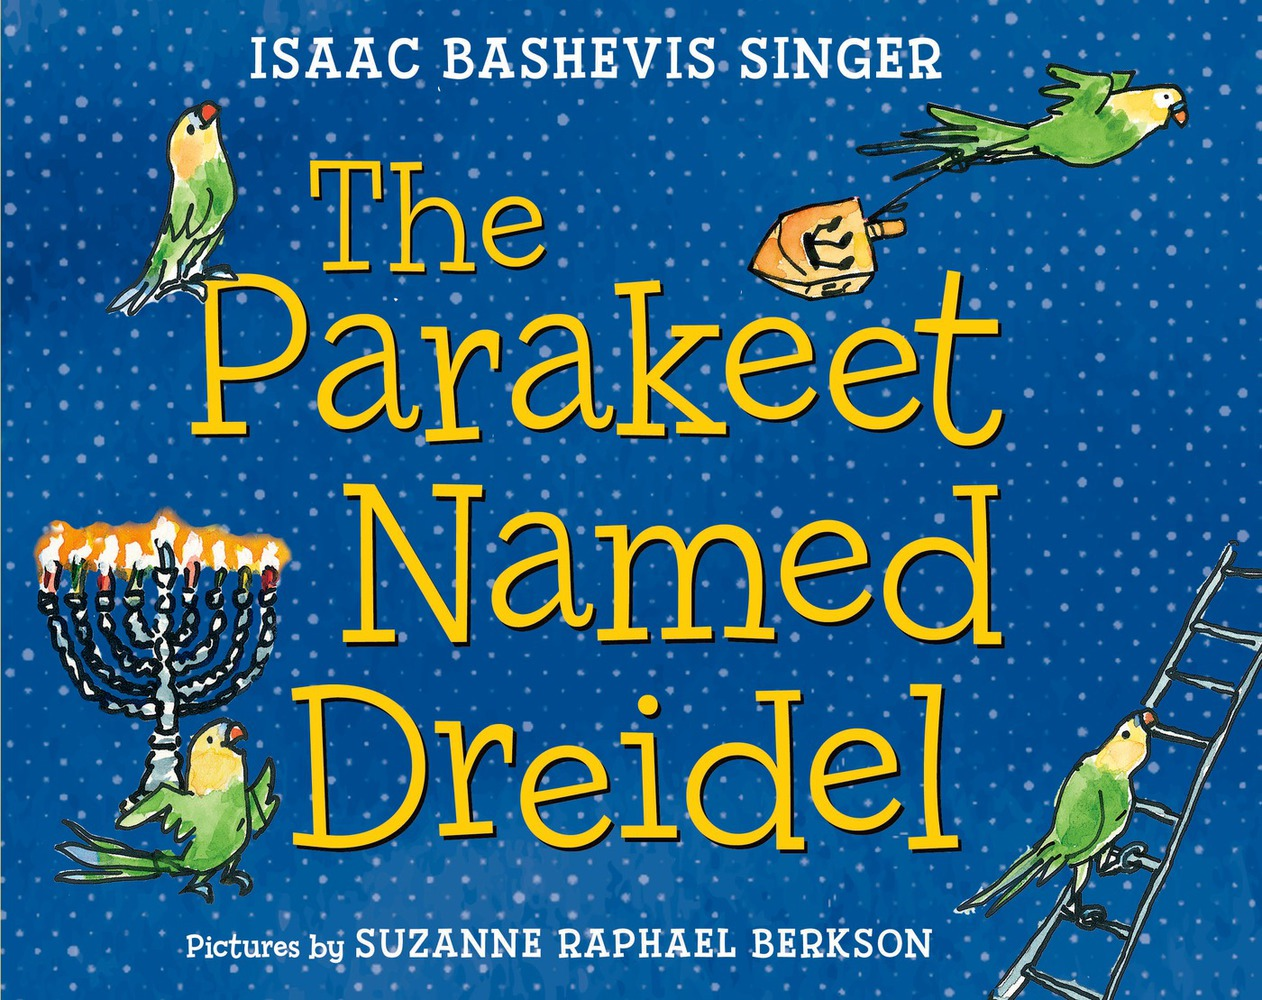 The Parakeet Named Dreidel Isaac Bashevis Singer, illustrated by Suzanne Raphael Berkson (2015)